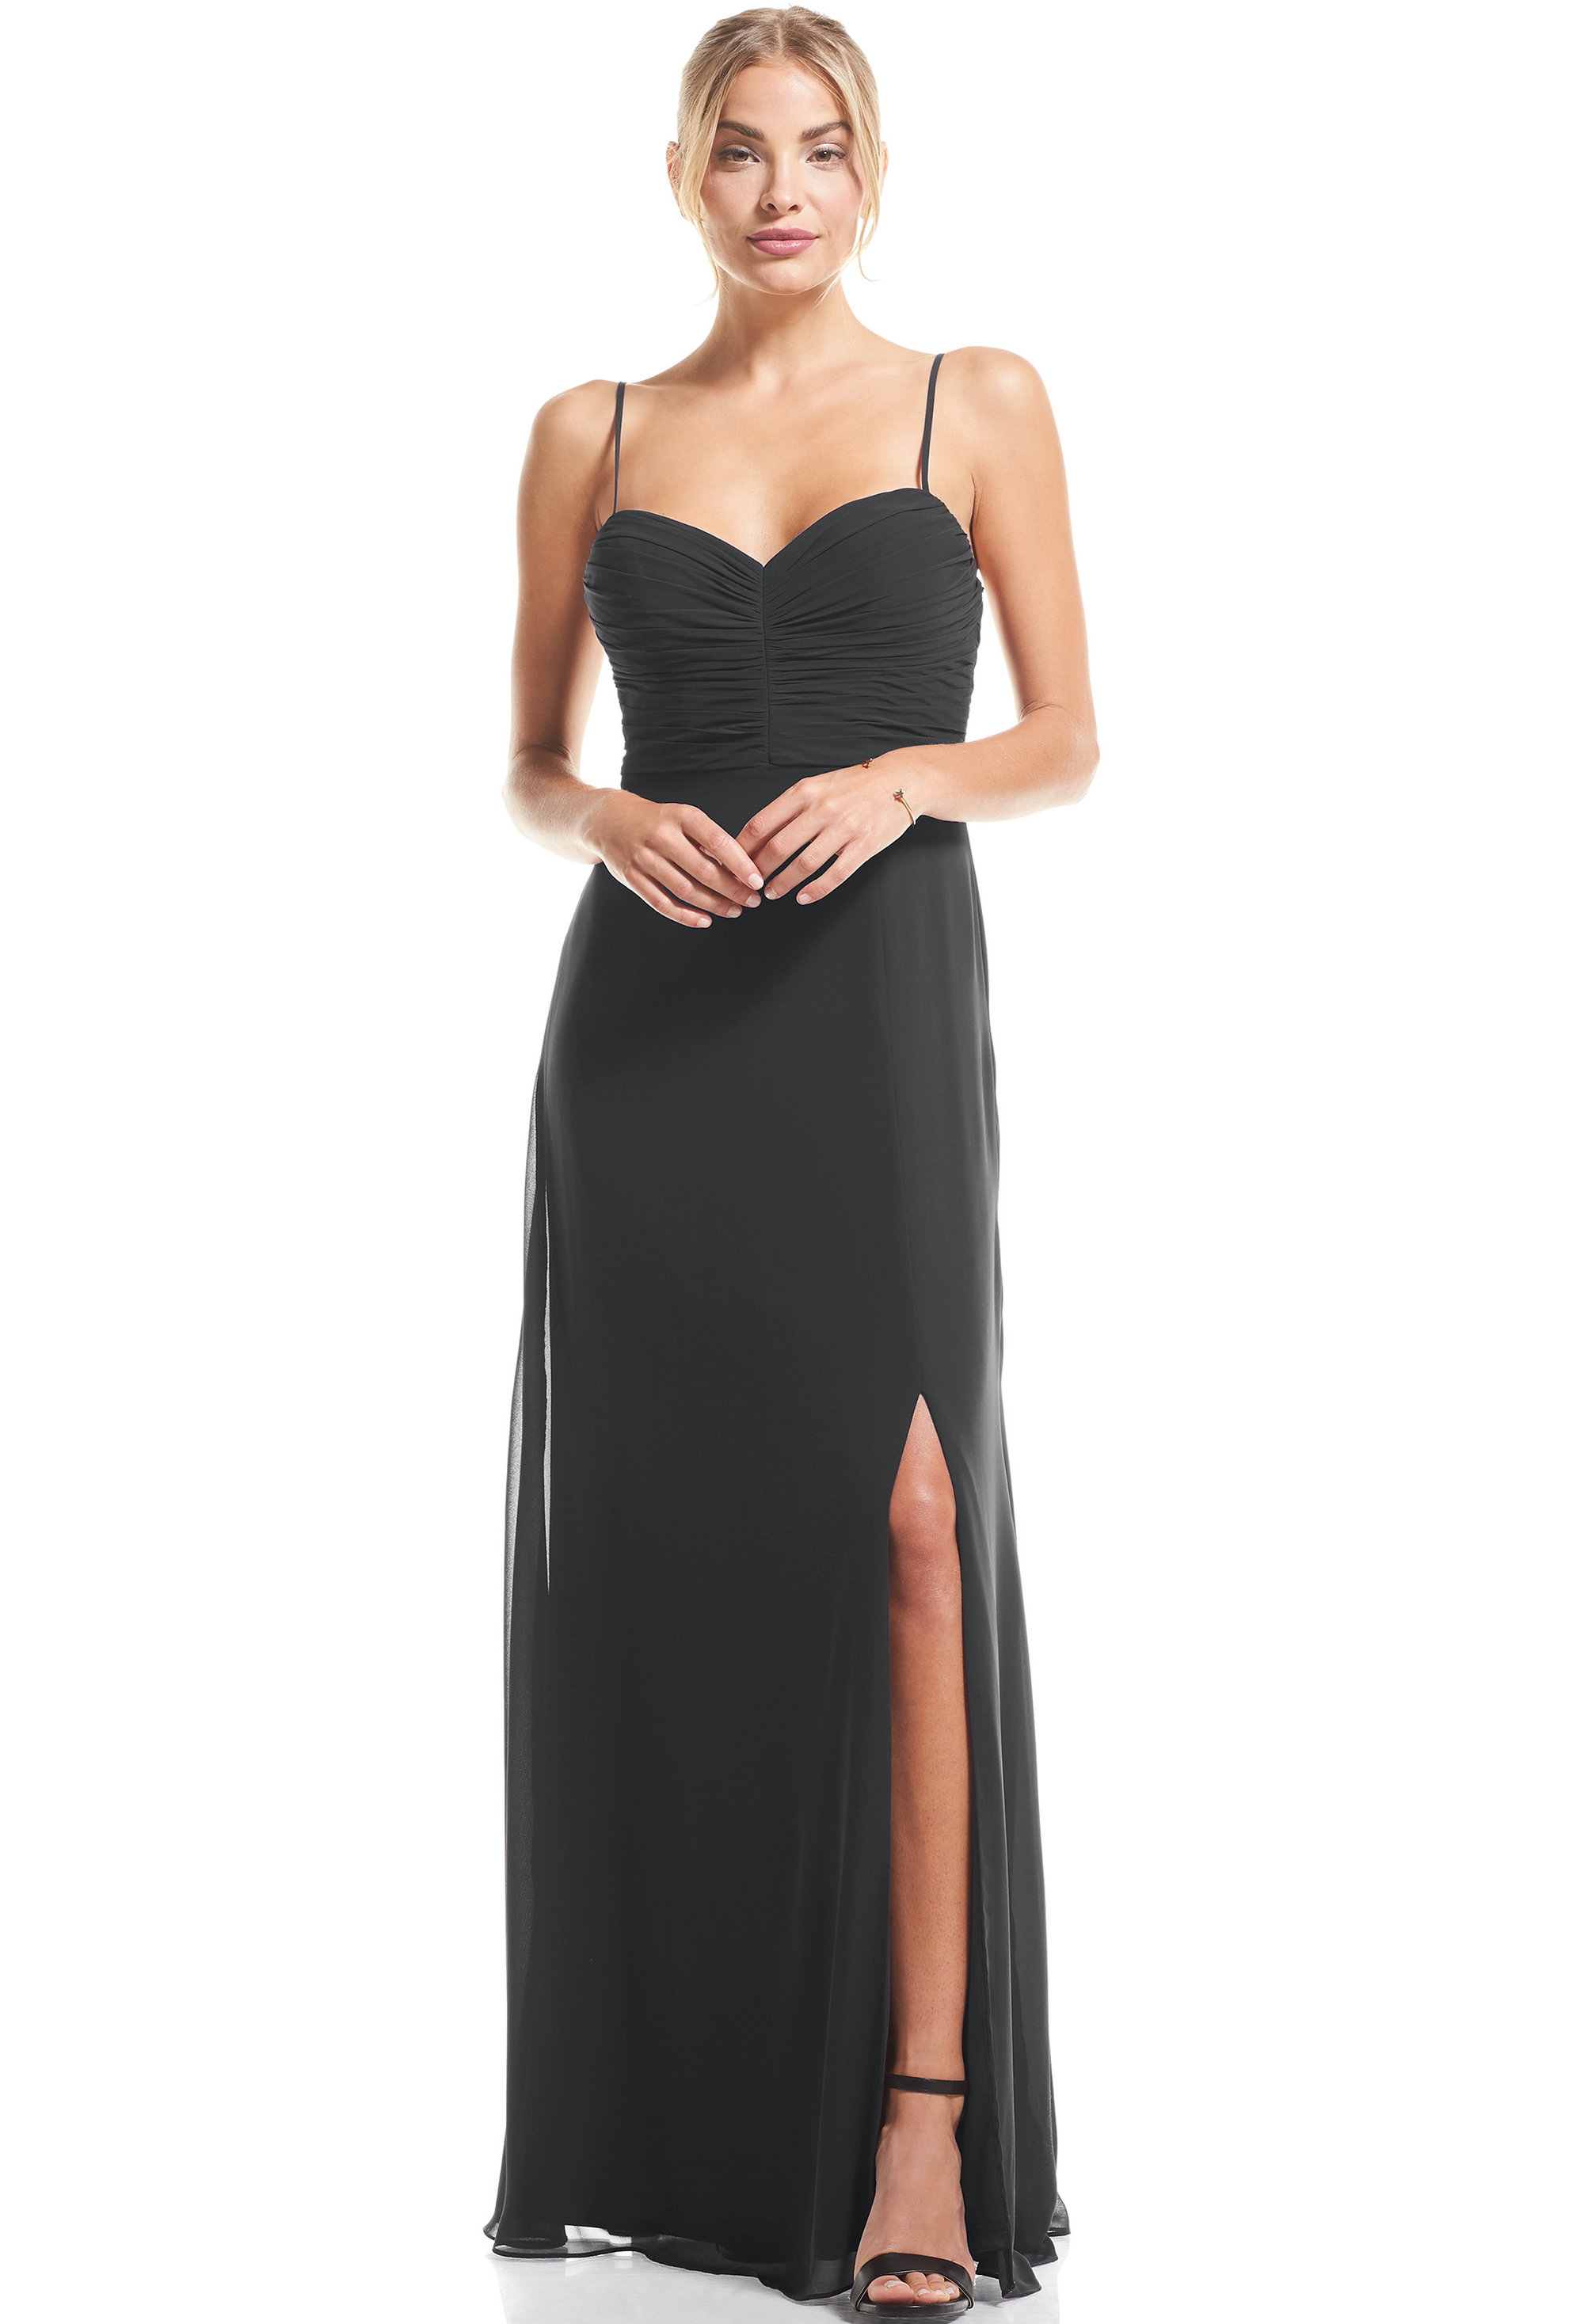 Bill Levkoff CHARCOAL Chiffon Sweetheart A-Line gown, $79.00 Front